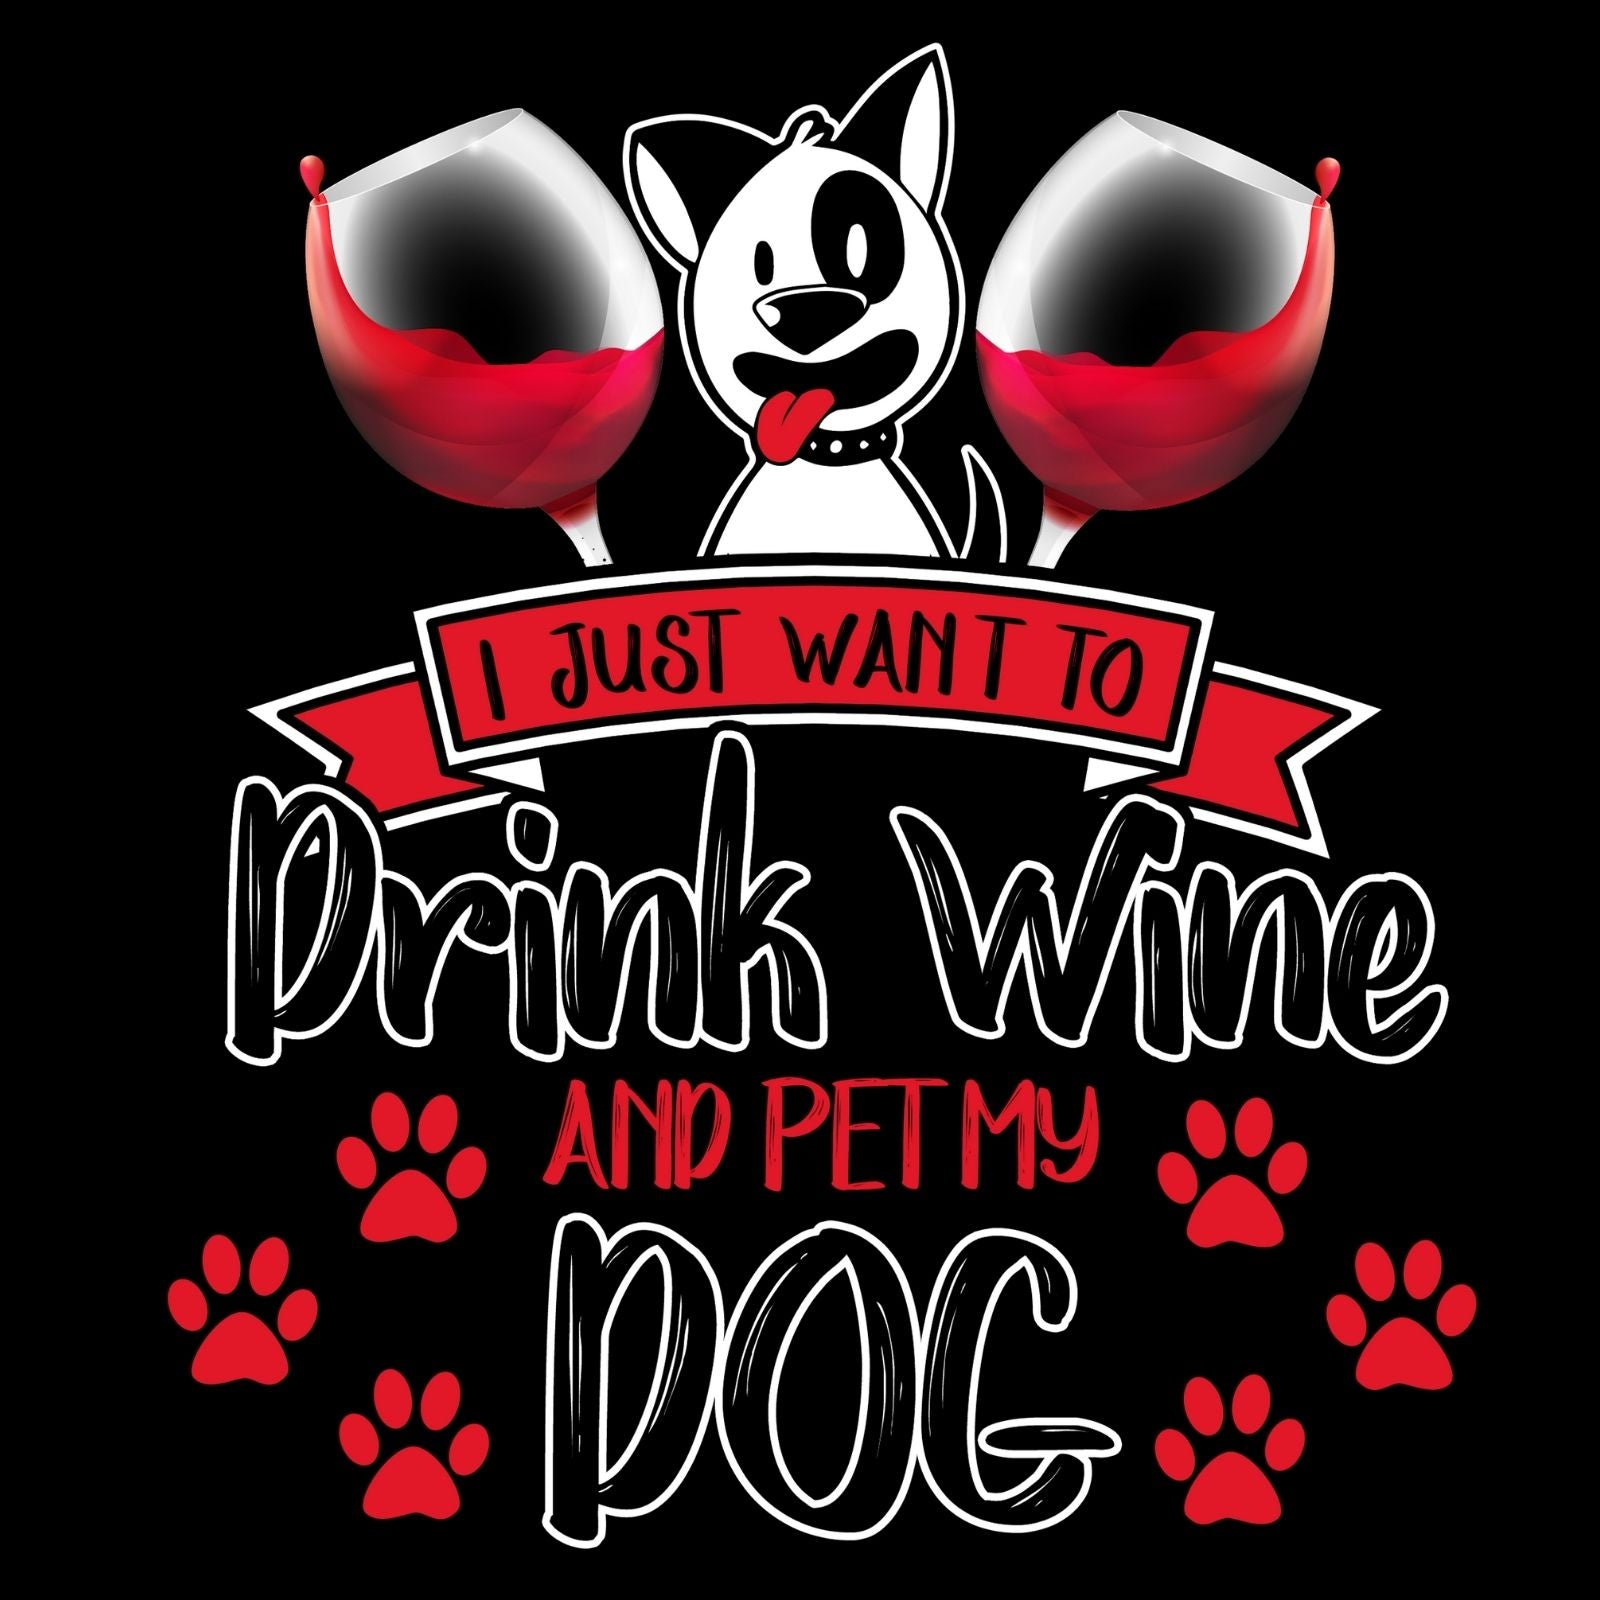 I Just Want To Drink Wine And Pet My Dog - Bastard Graphics